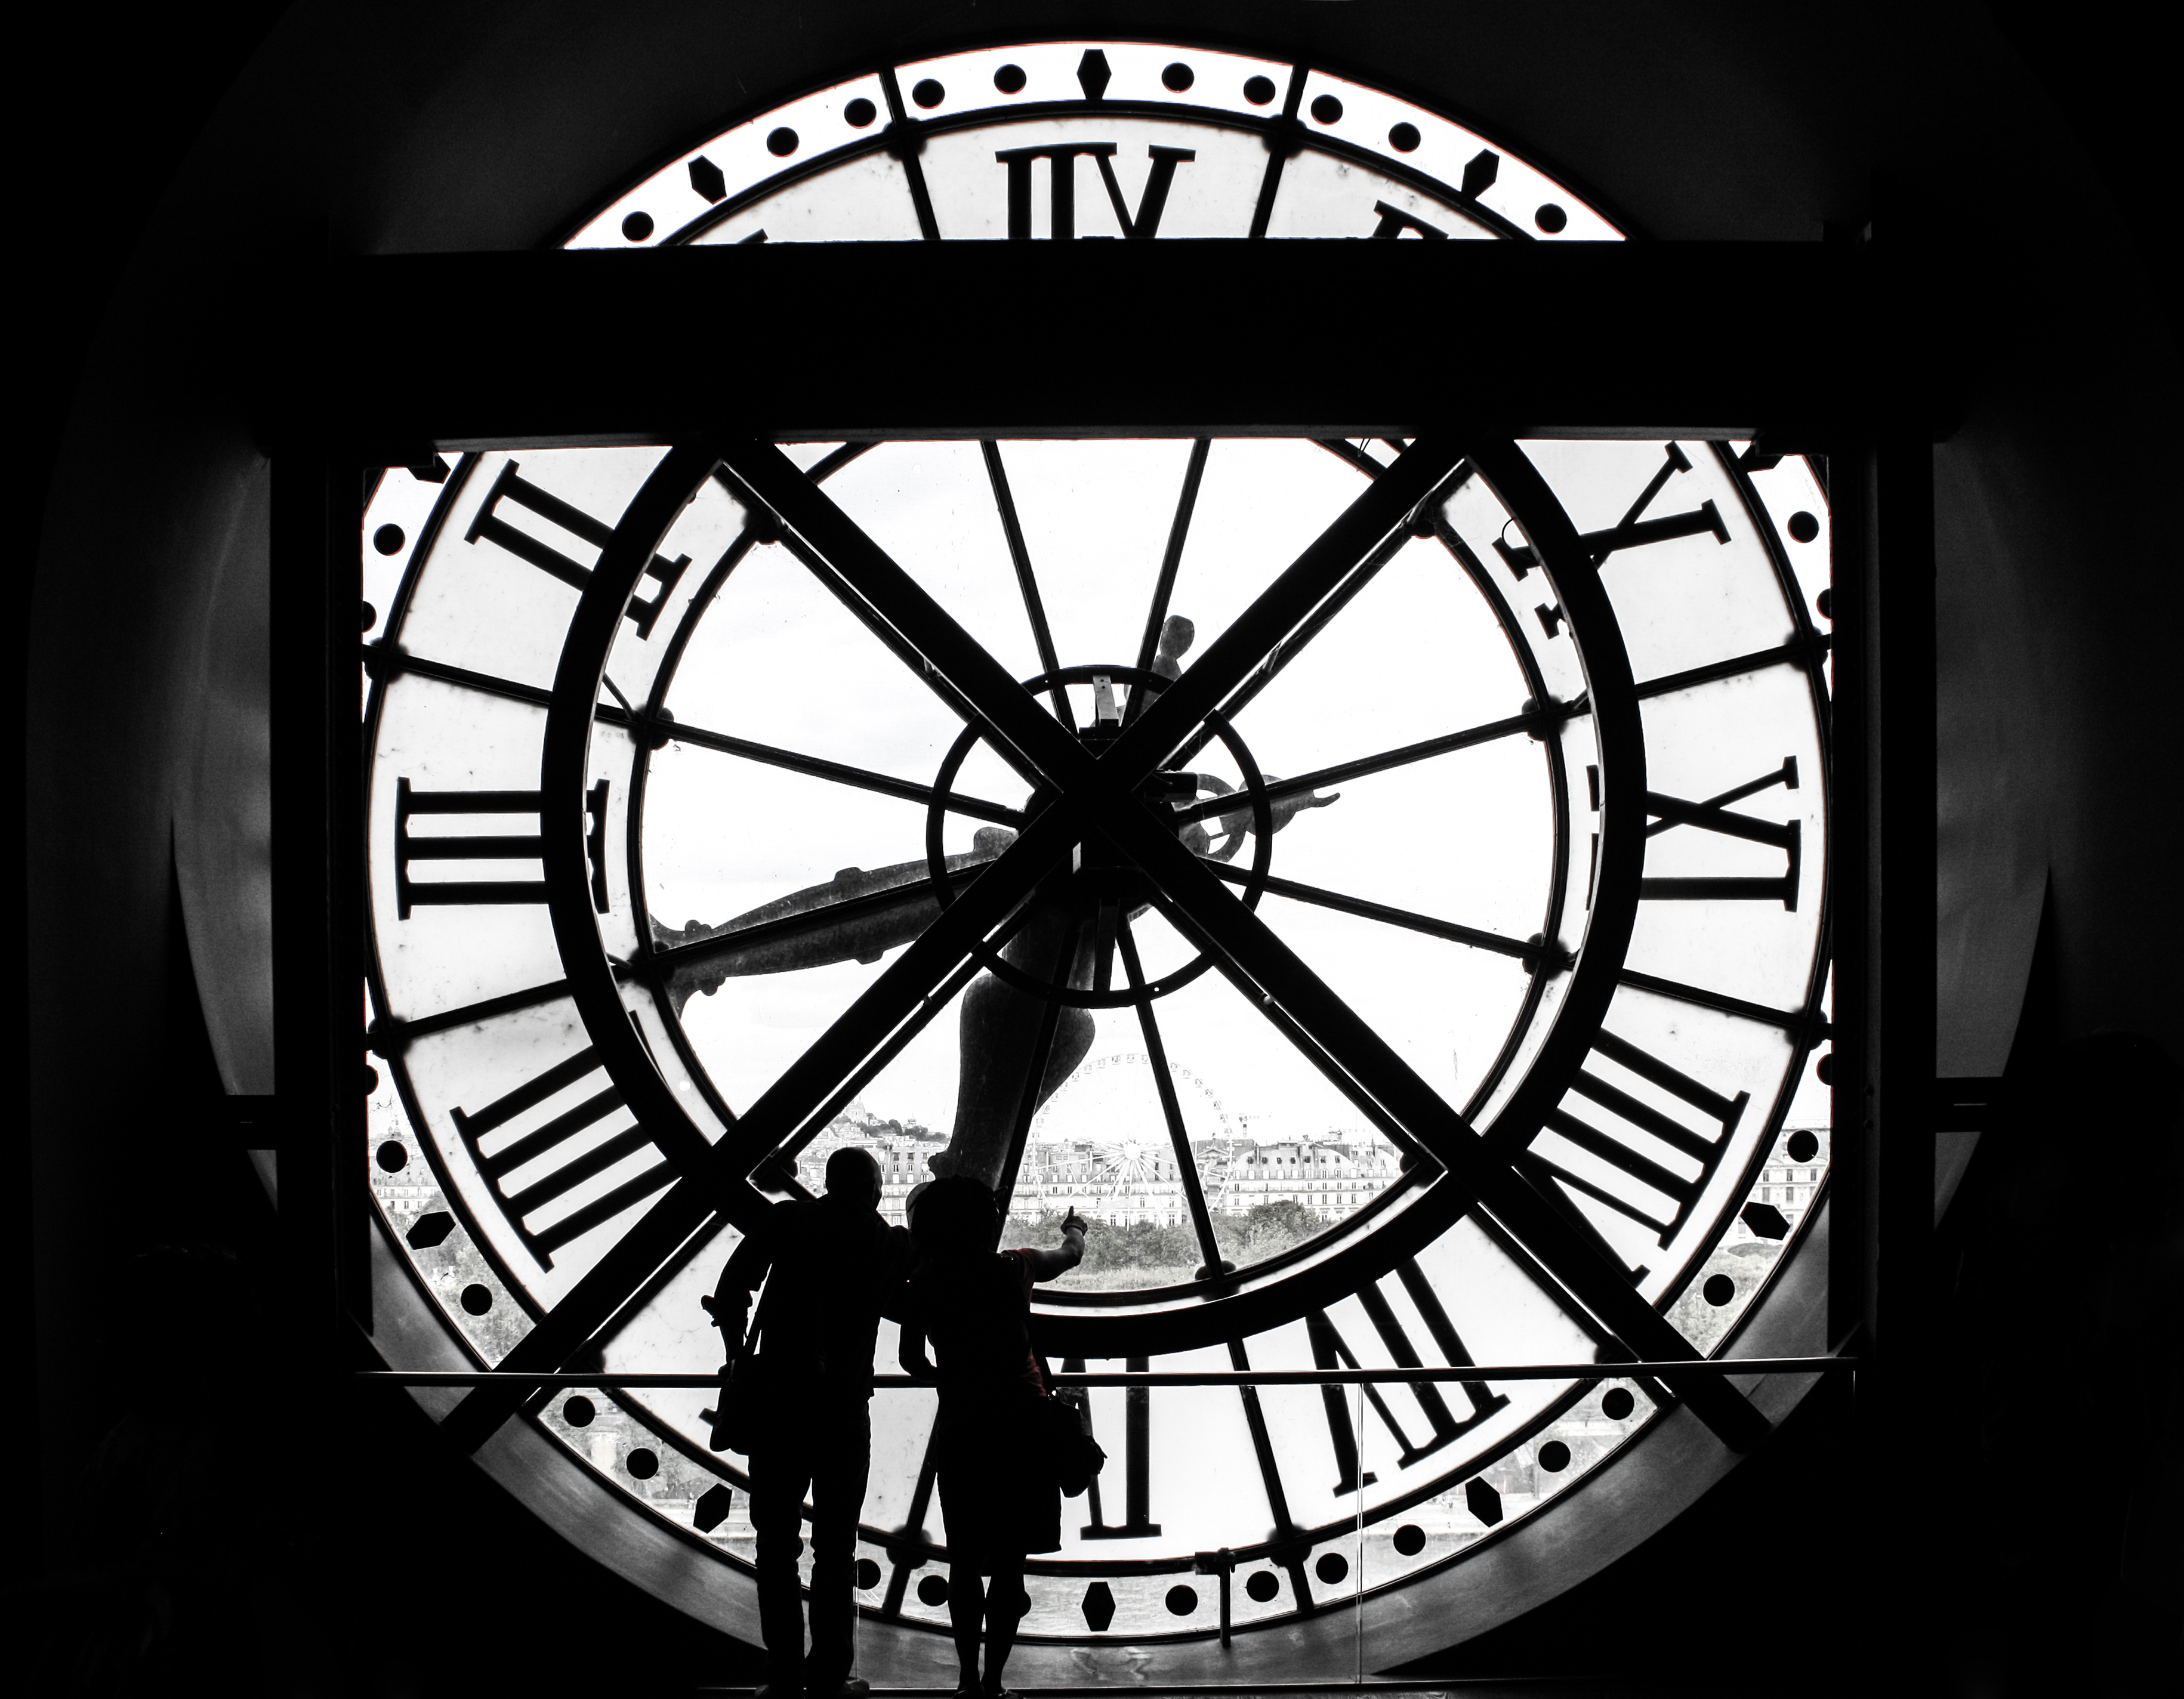 file reverse face of clock in gare d orsay 16 august 2013 Color Space sRGB vs Adobe RGB file reverse face of clock in gare d orsay 16 august 2013